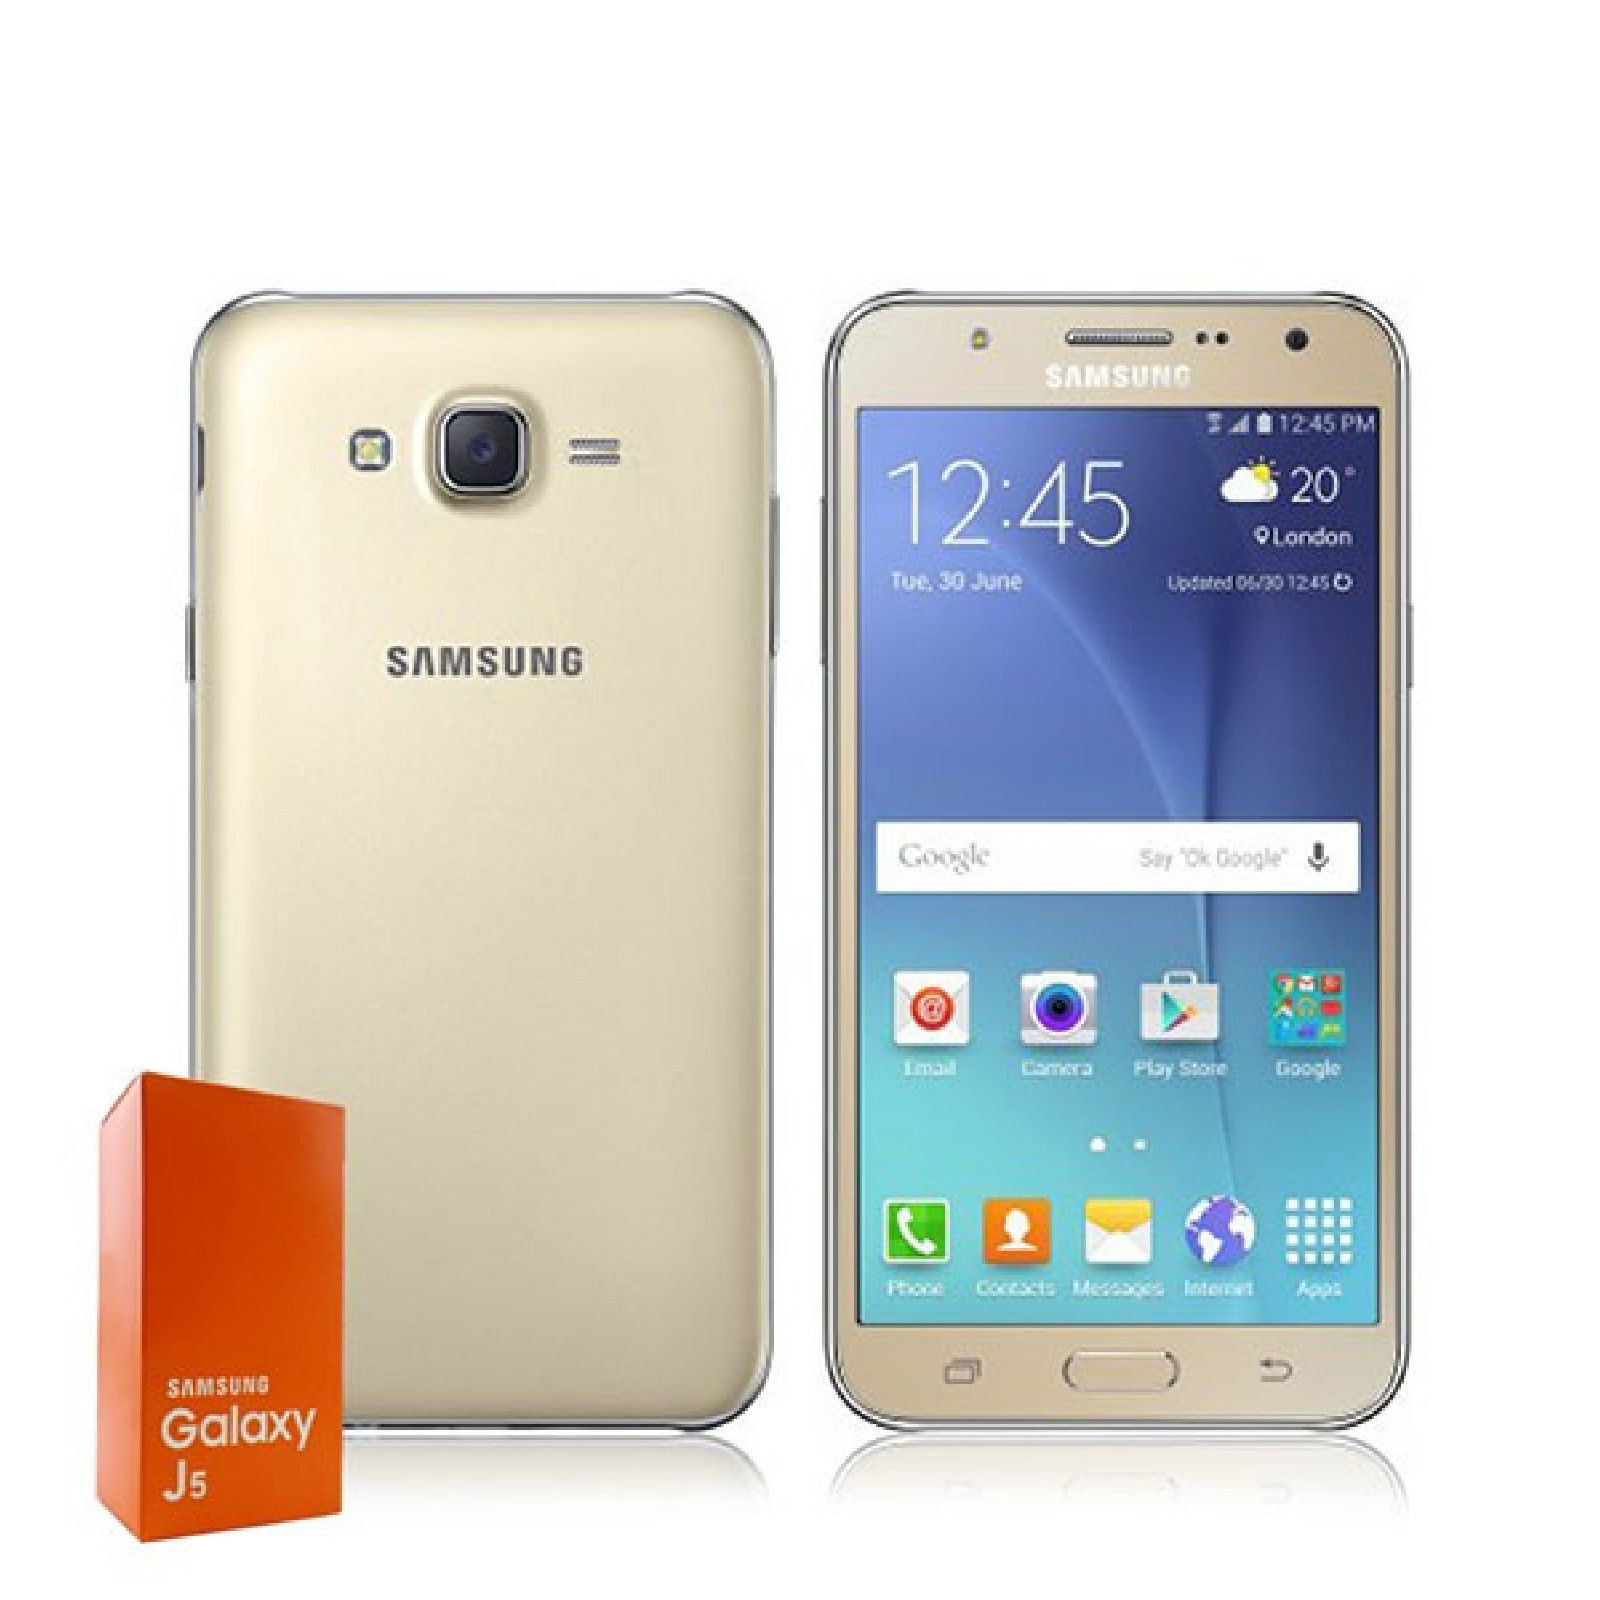 samsung galaxy j5 4g 8gb 13mp sim free dual sim smartphone pcmacs. Black Bedroom Furniture Sets. Home Design Ideas